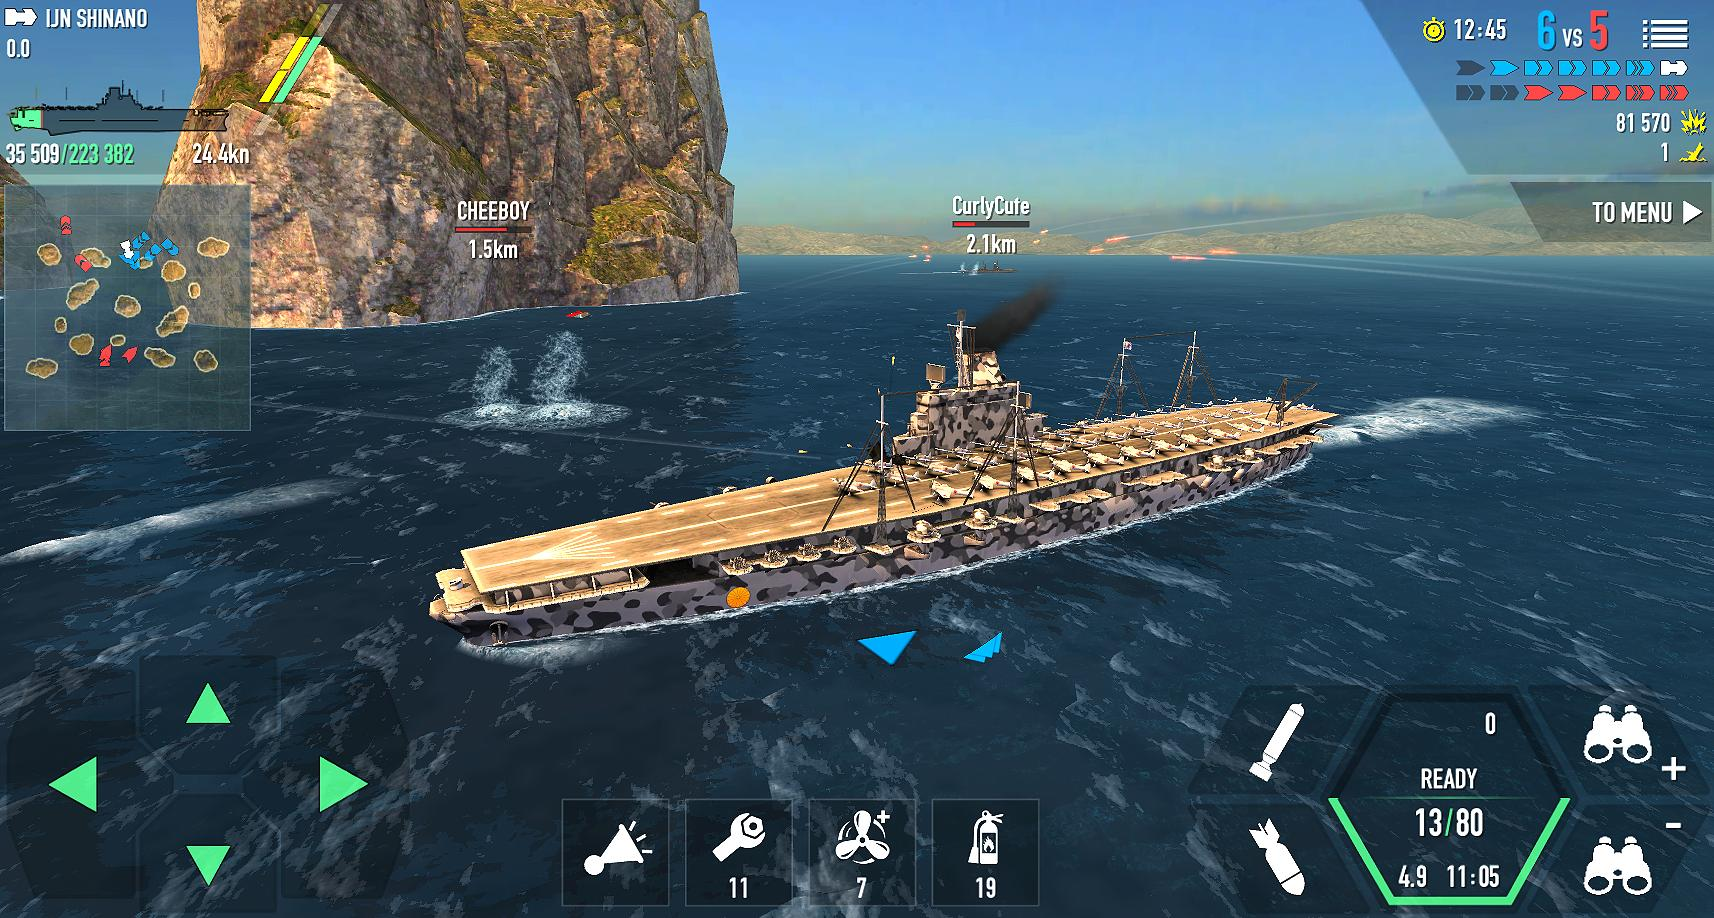 Battle of Warships for Android - APK Download